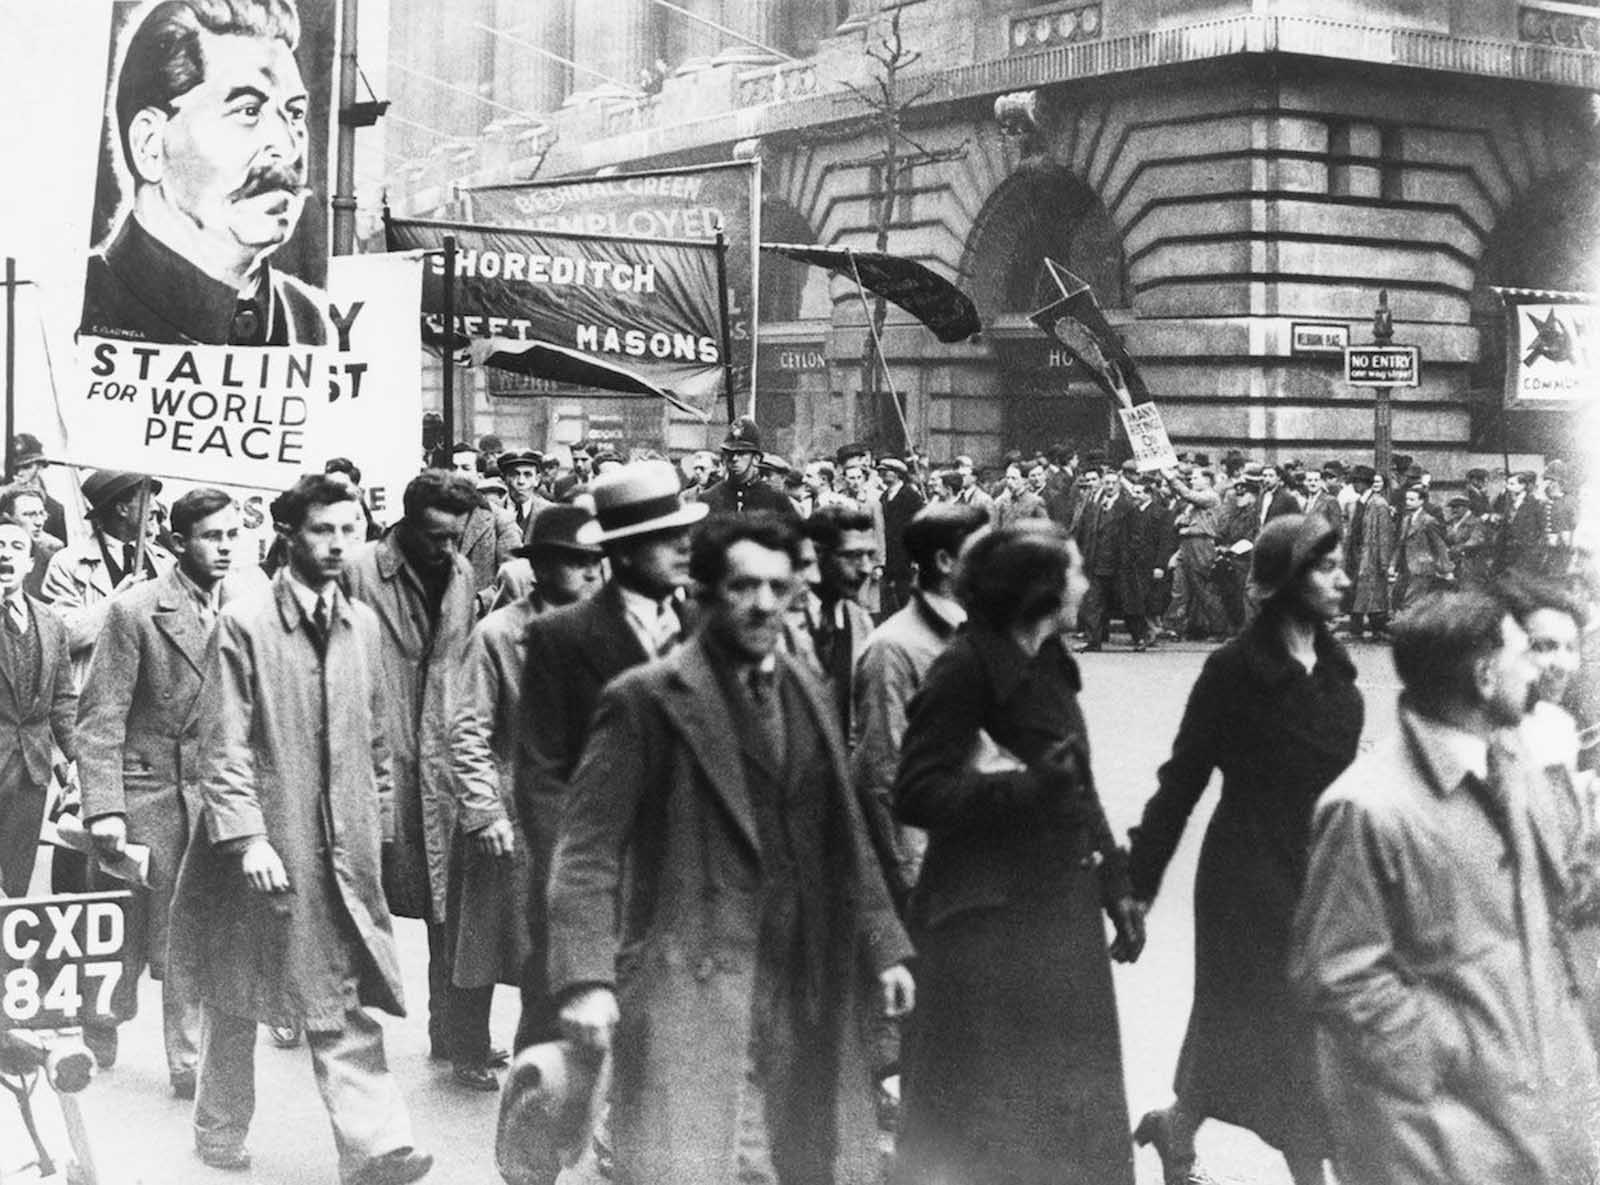 English Communists marching in London. 1936.